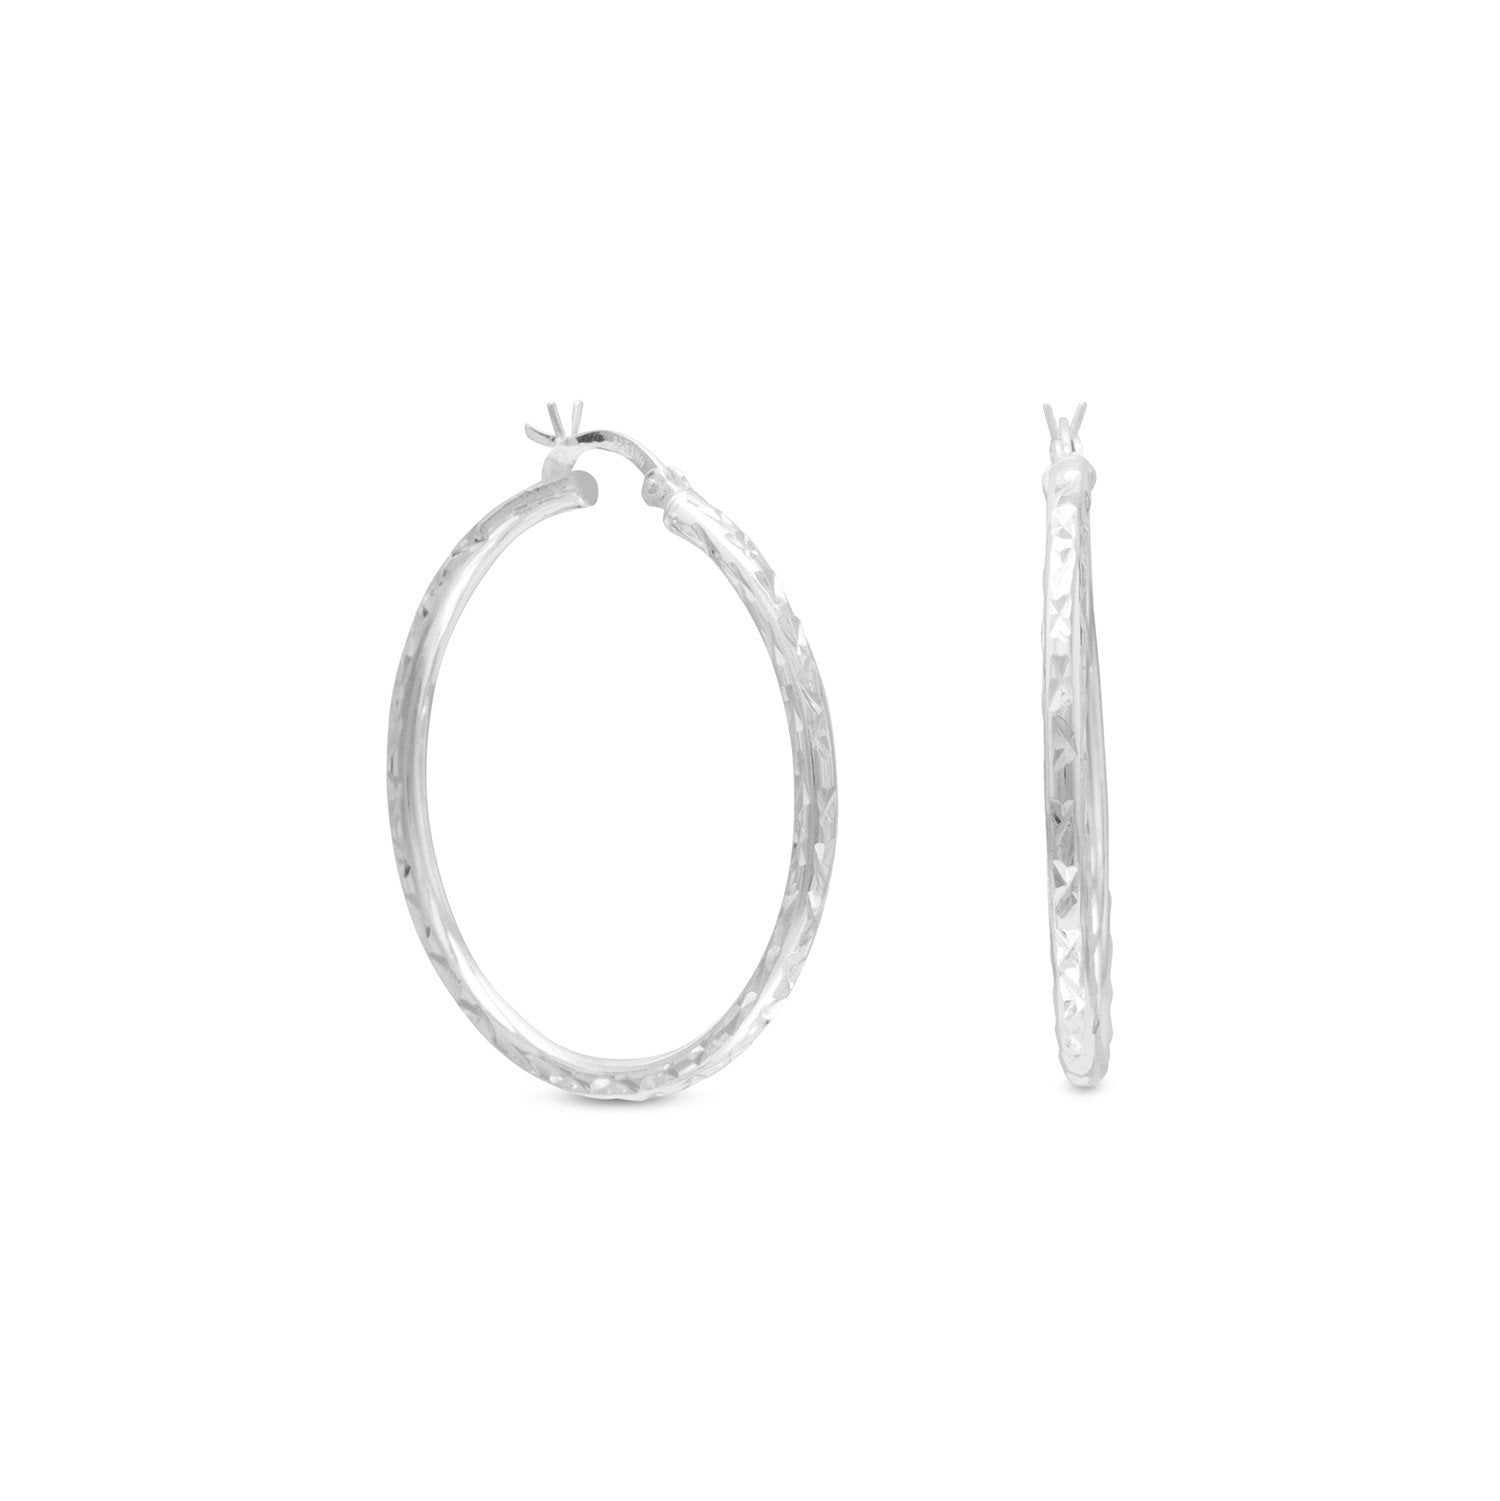 Trendy 2.5mm x 35mm Diamond Cut Hoop Earrings - Rocky Mt. Outlet Inc - Shop & Save 24/7